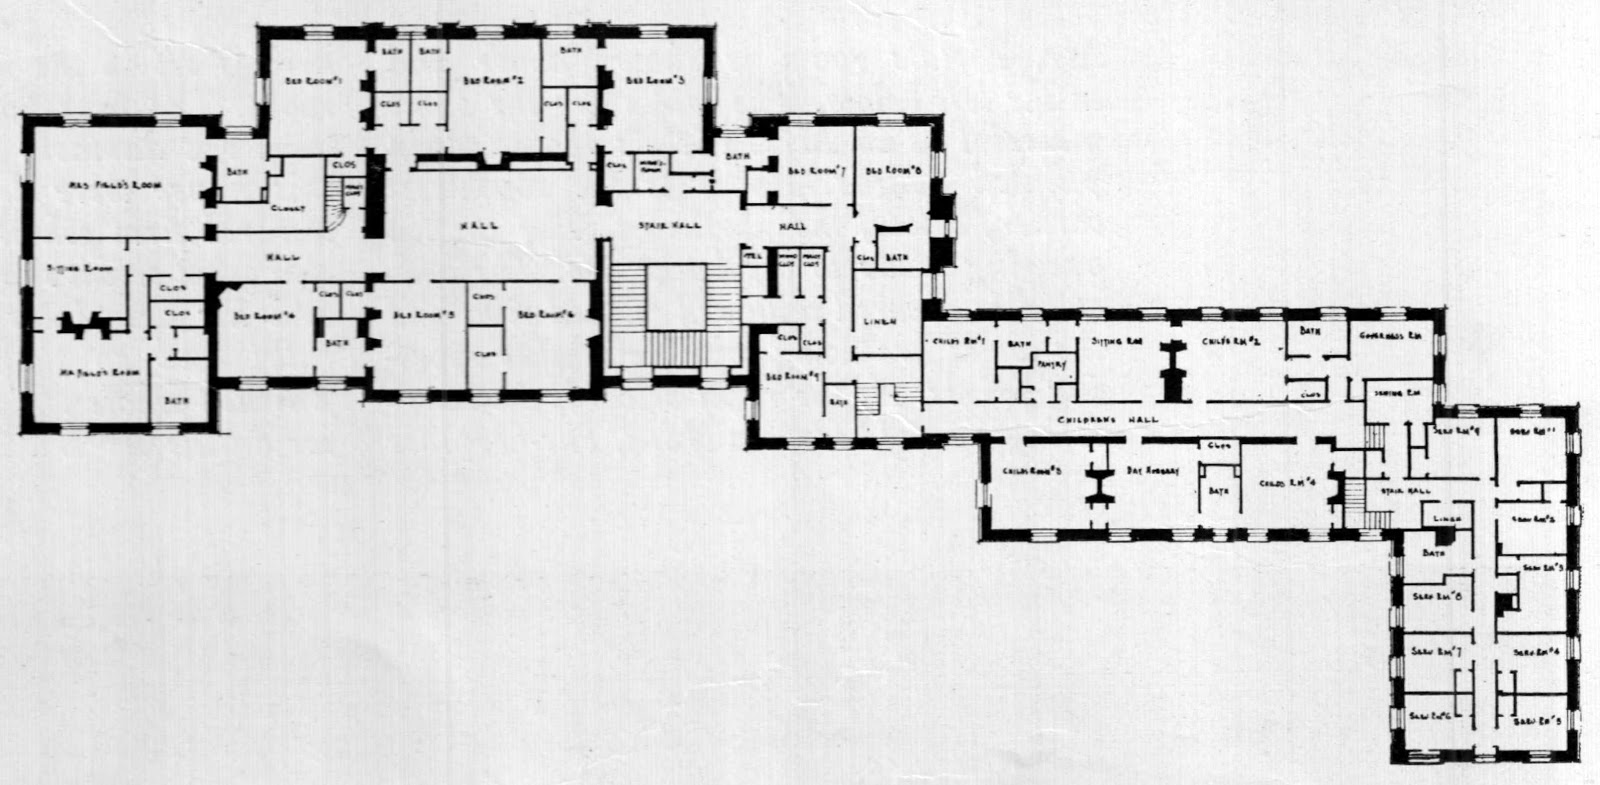 half painted walls white house east wing floor plan guggenheim port